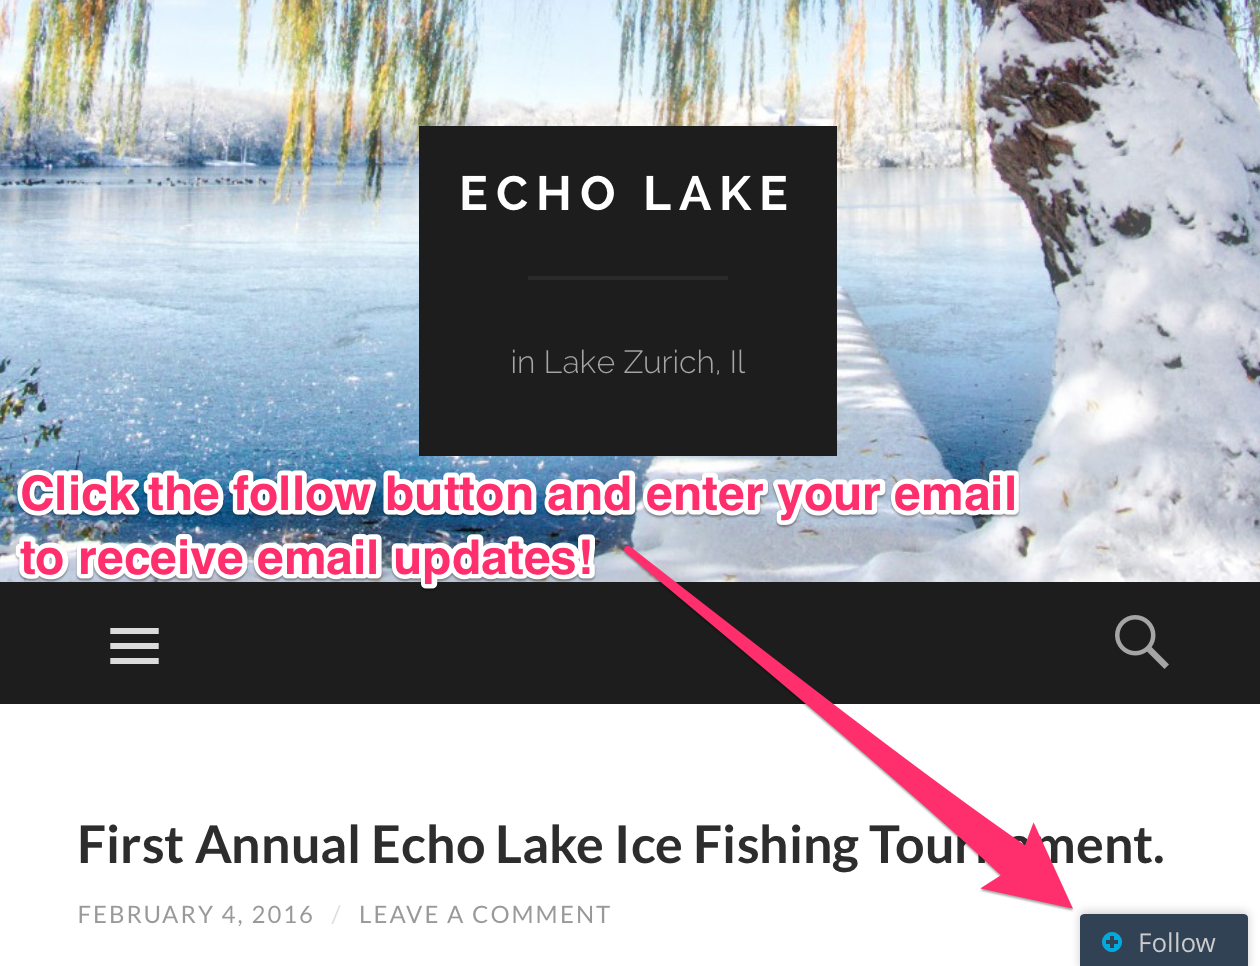 Echo_Lake_in_Lake_Zurich_Illinois.png